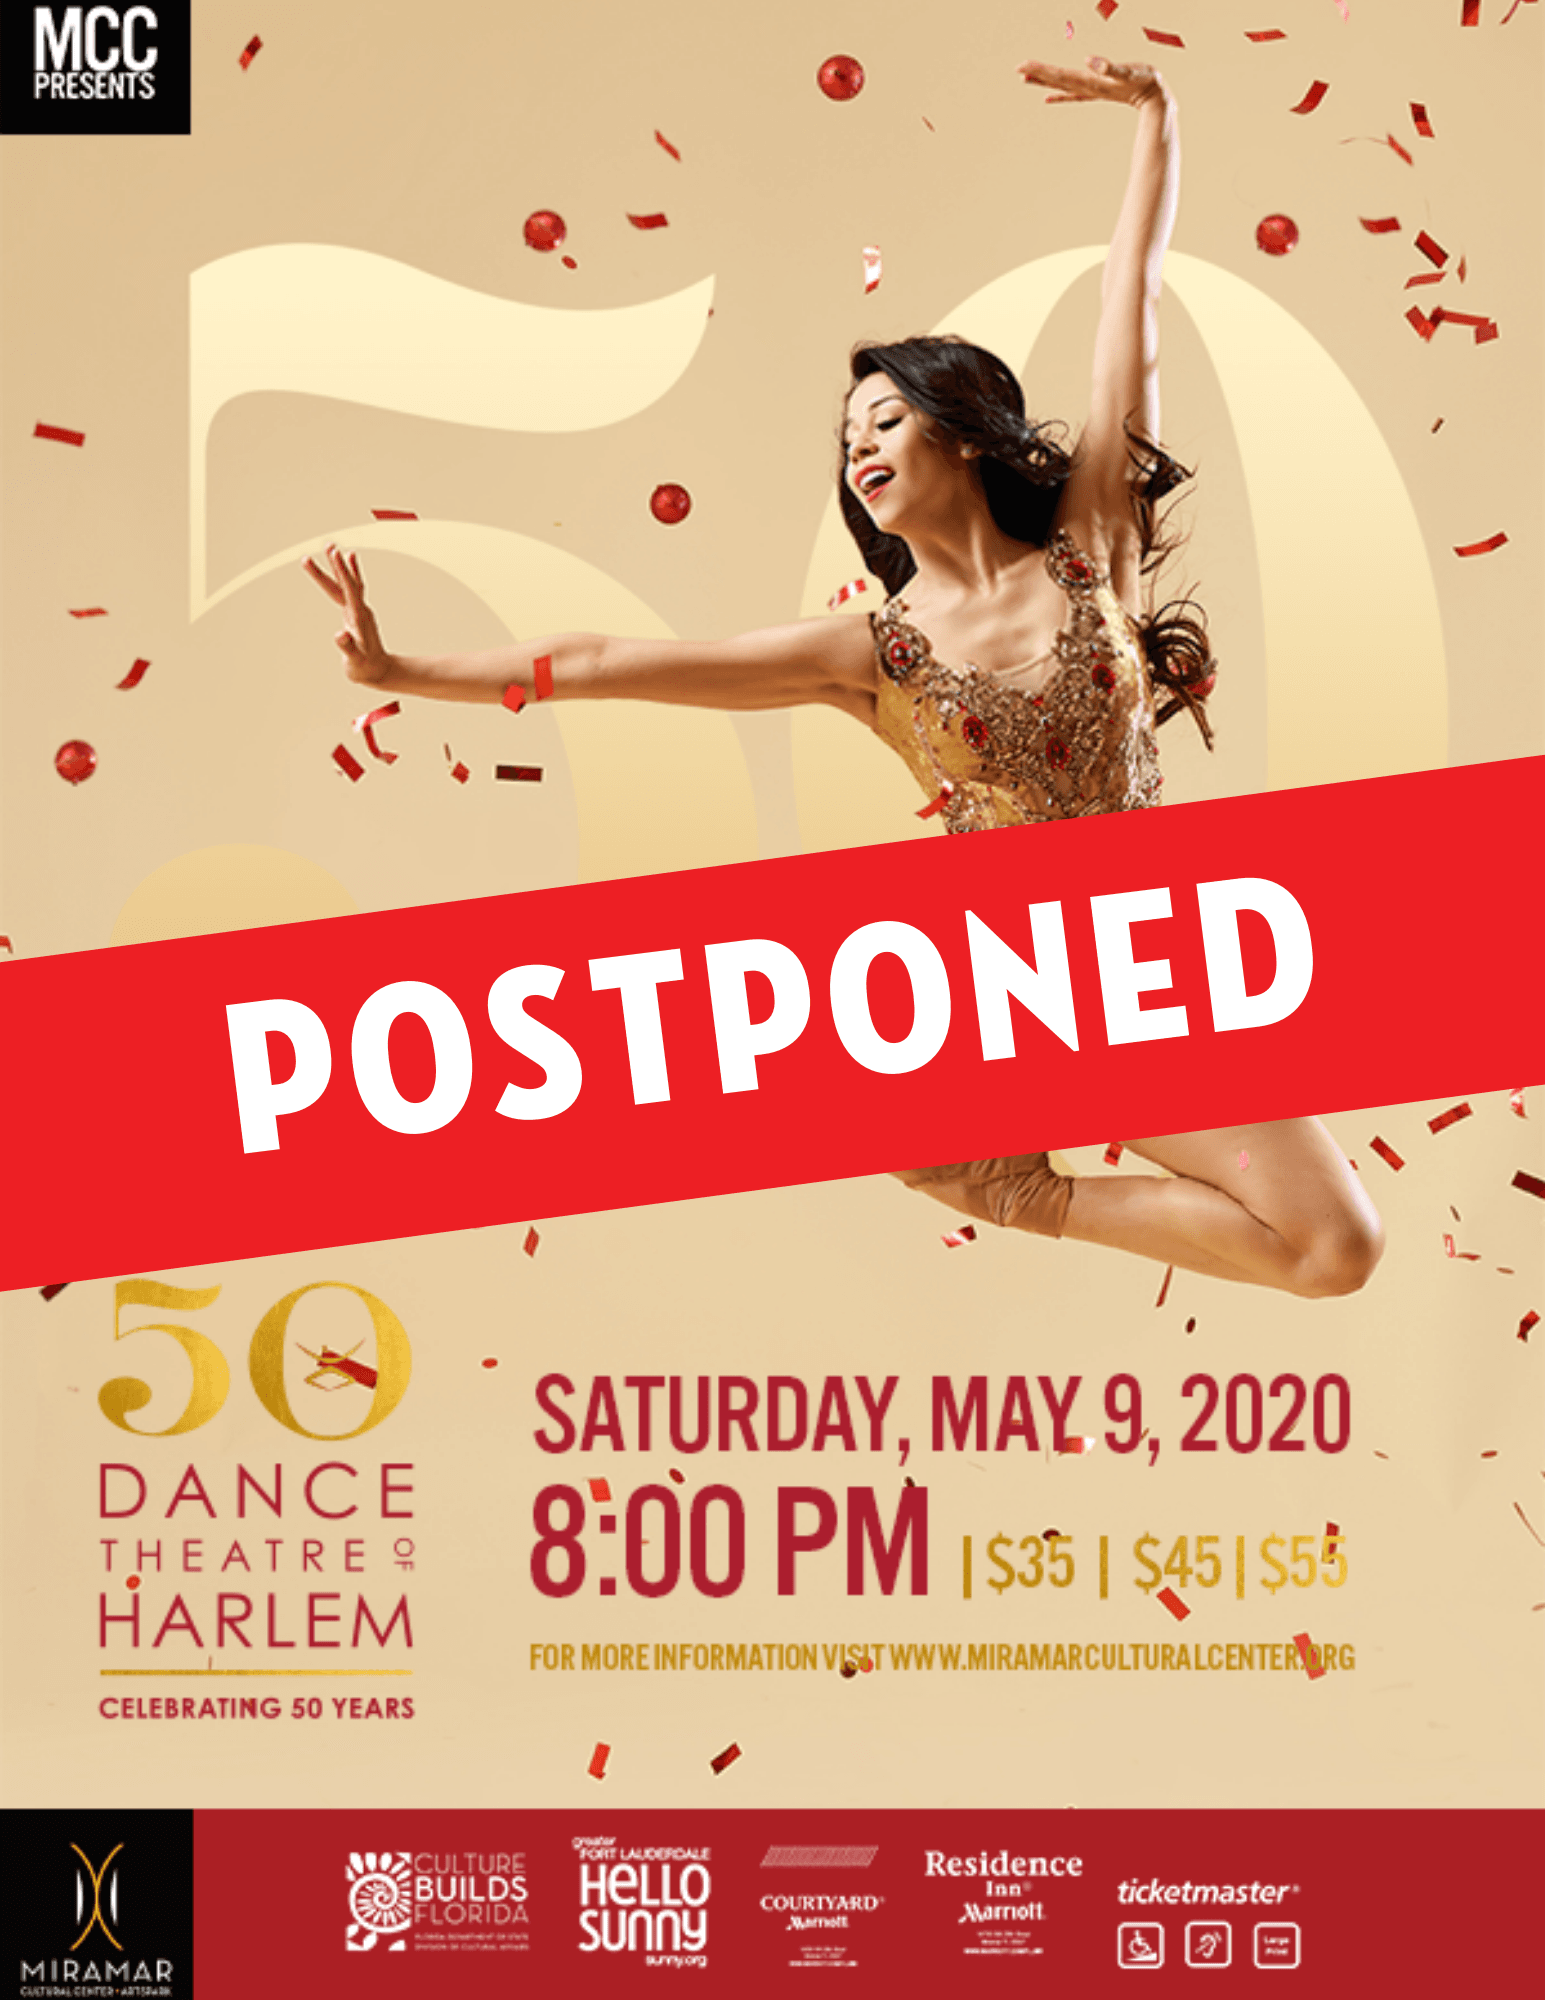 EVENT POSTPONED NOTICE